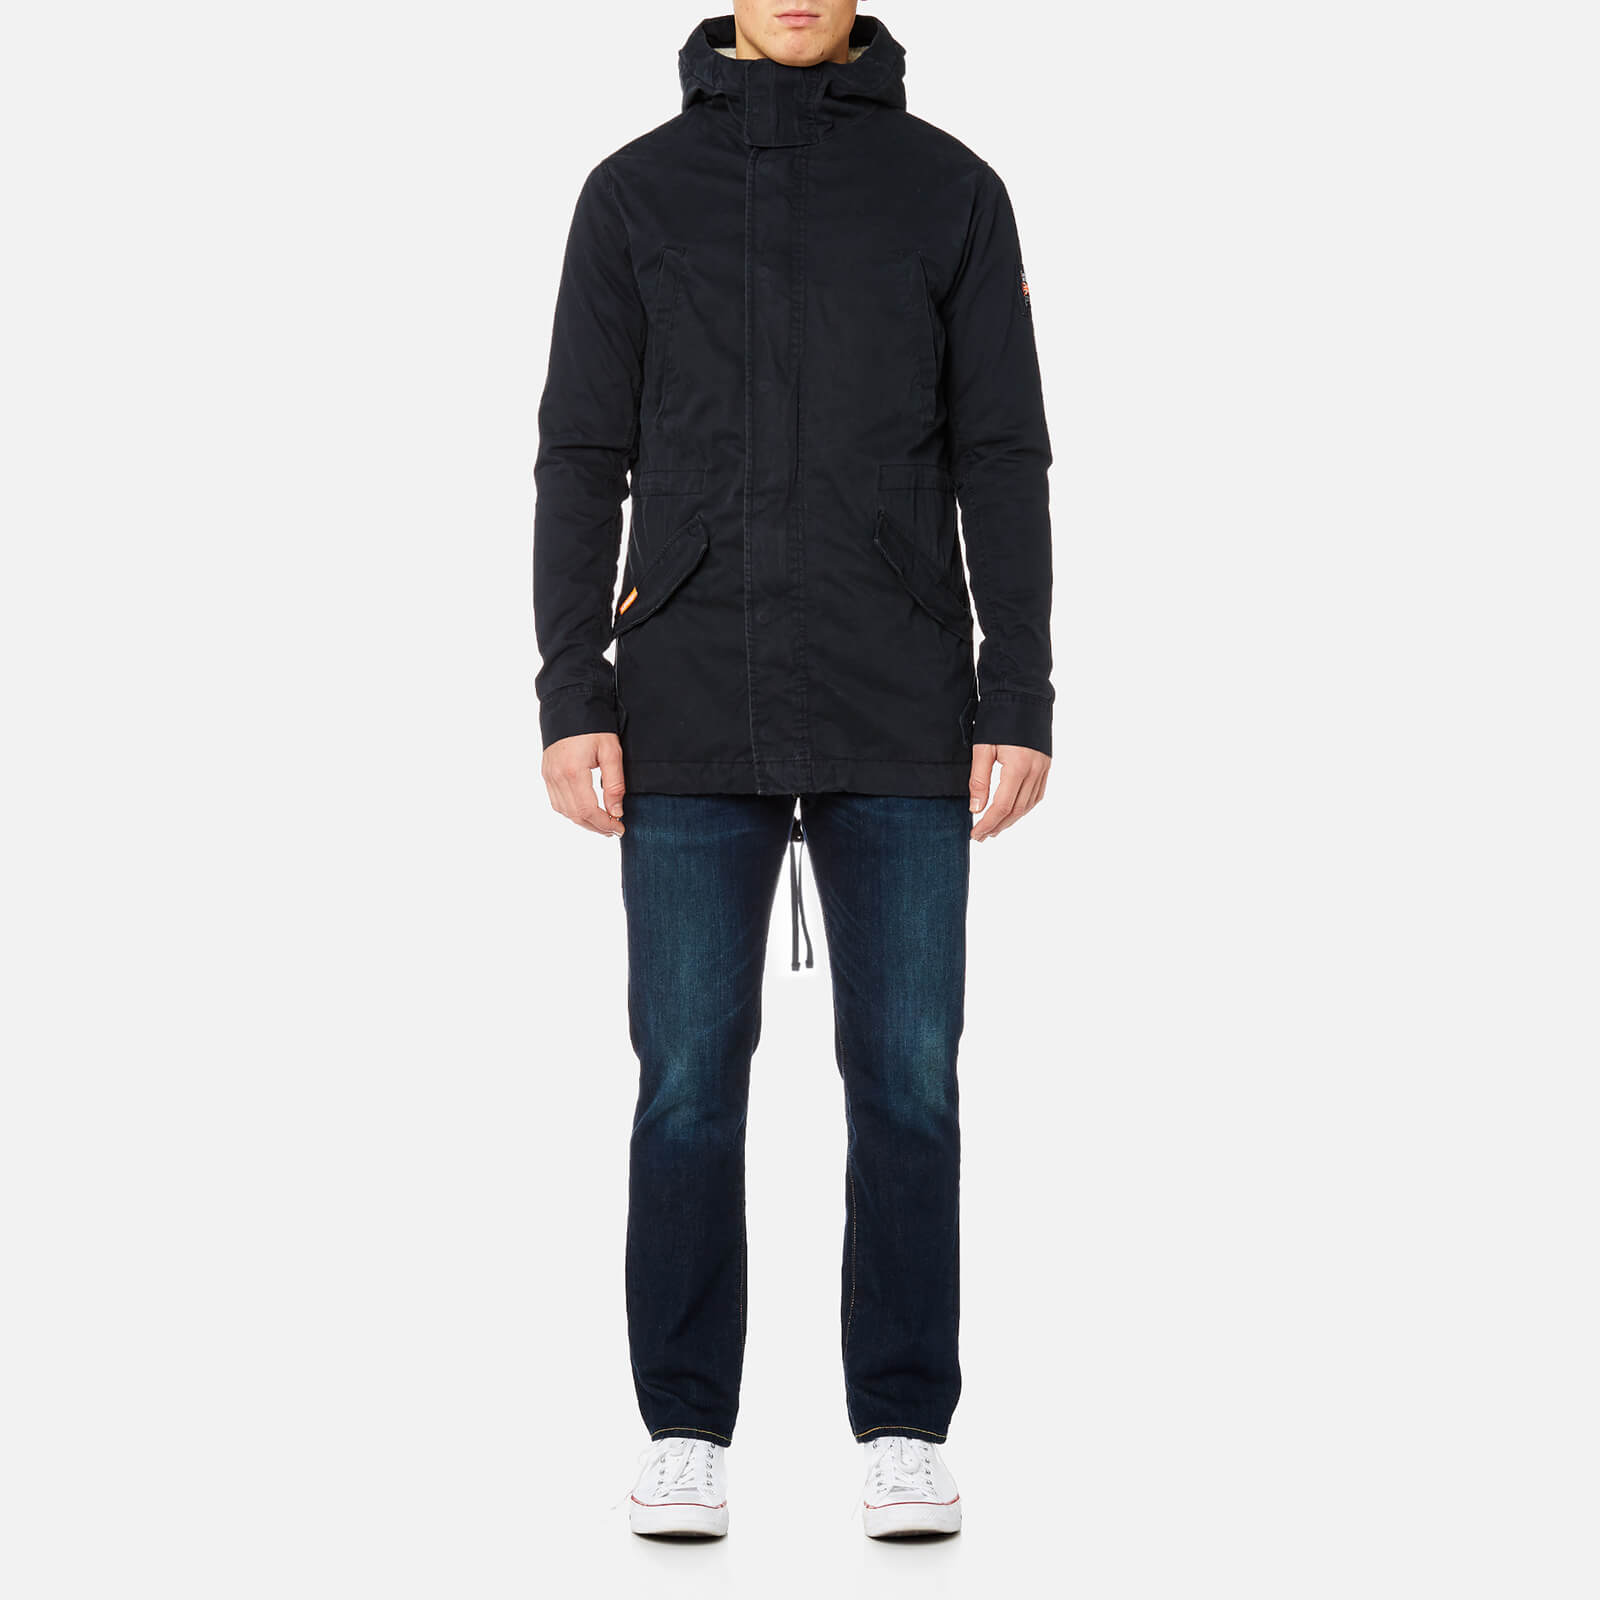 1e83a51569976 Superdry Men's Winter Rookie Military Parka - Dark Navy Clothing |  TheHut.com